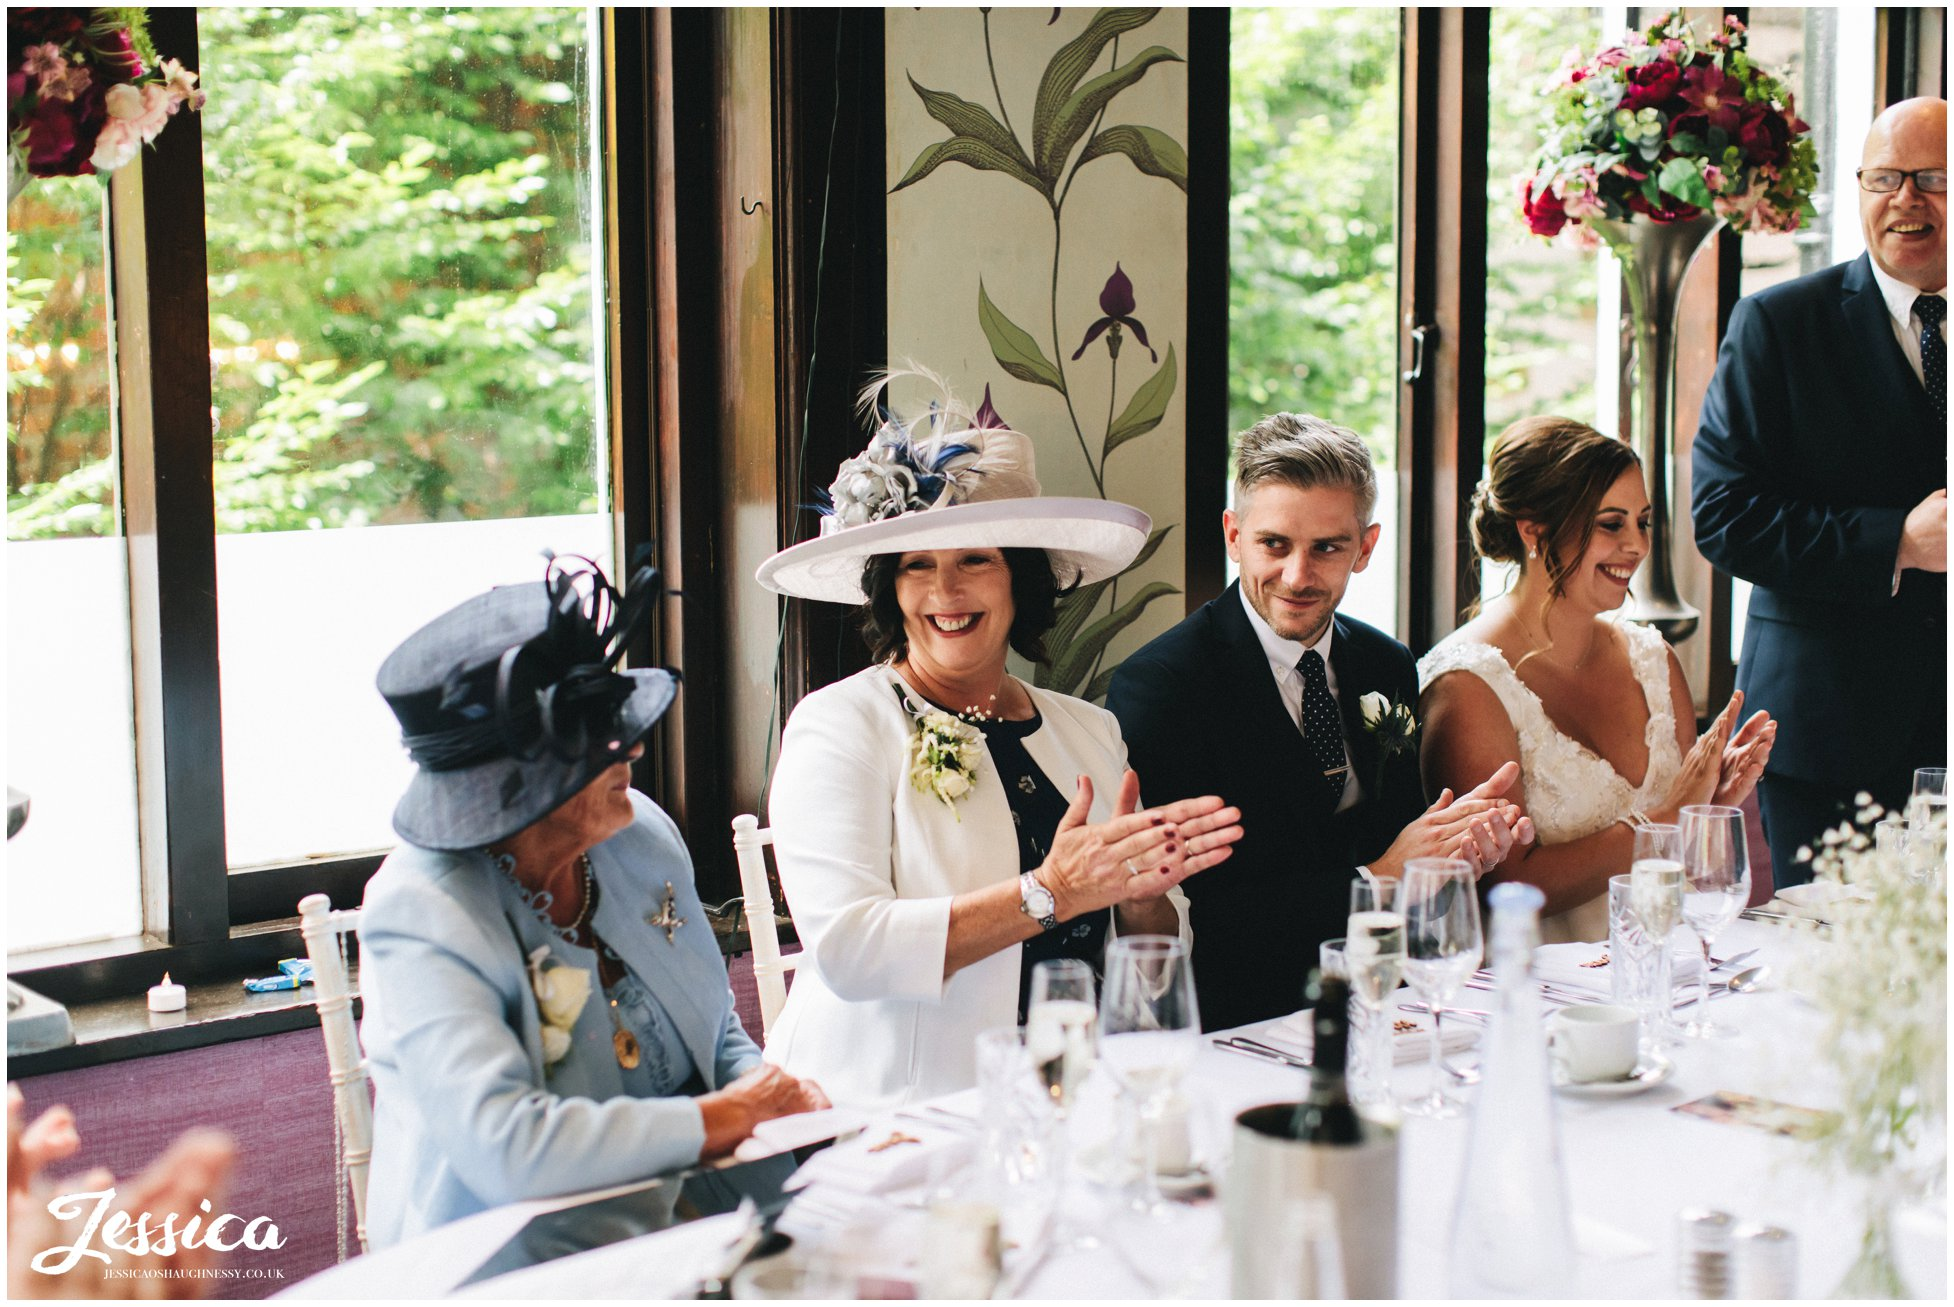 the top table applaud the father of the bride as he finishes his speech